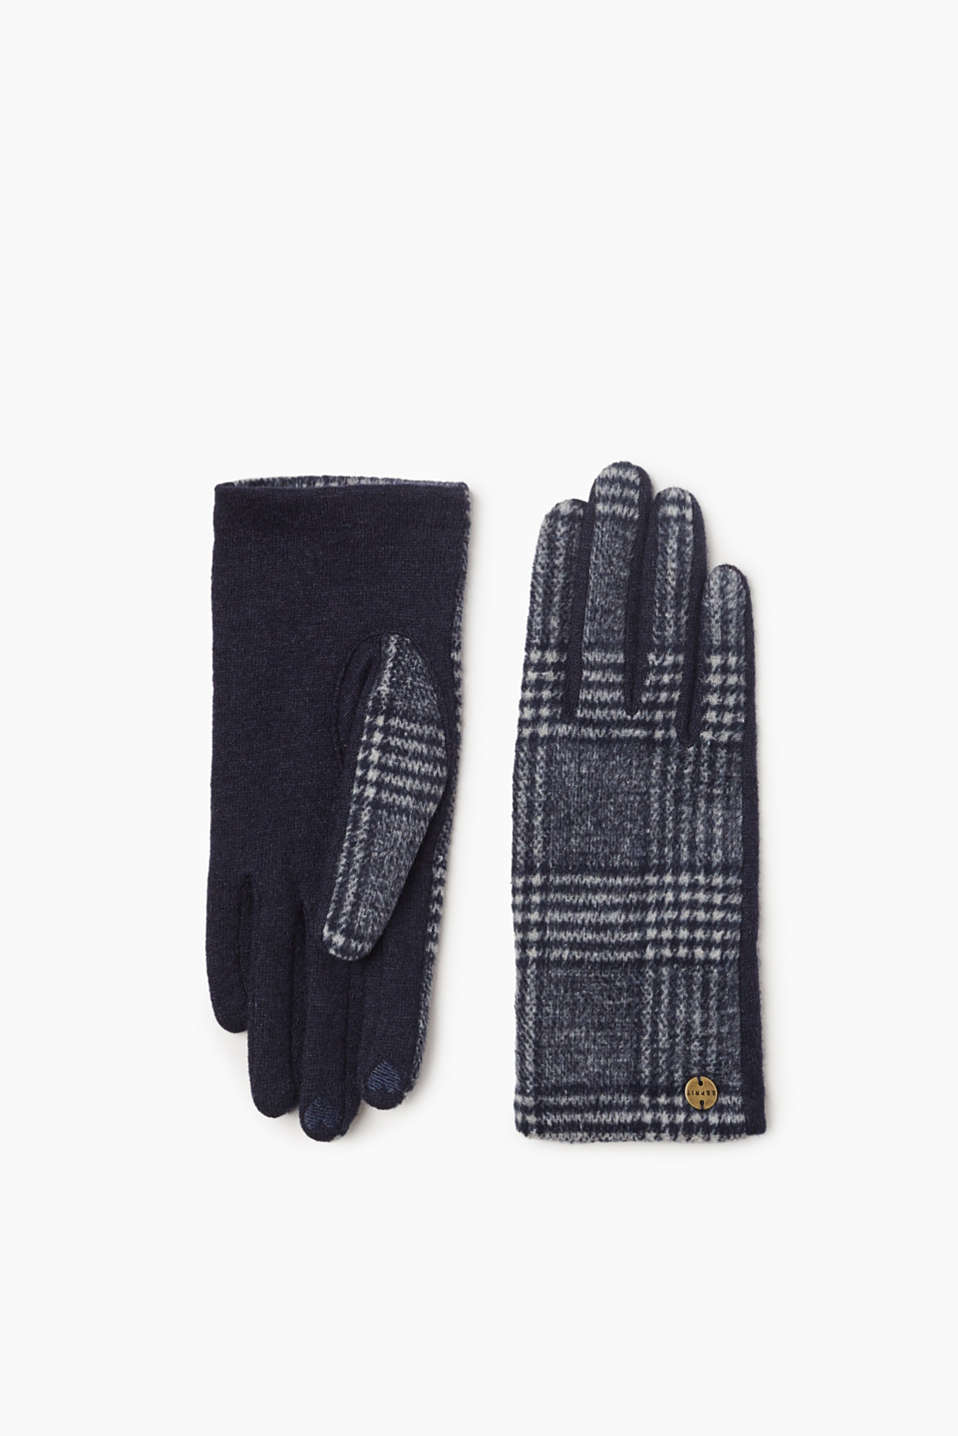 The exciting glencheck pattern and soft fabric blend containing wool make these gloves a favourite accessory